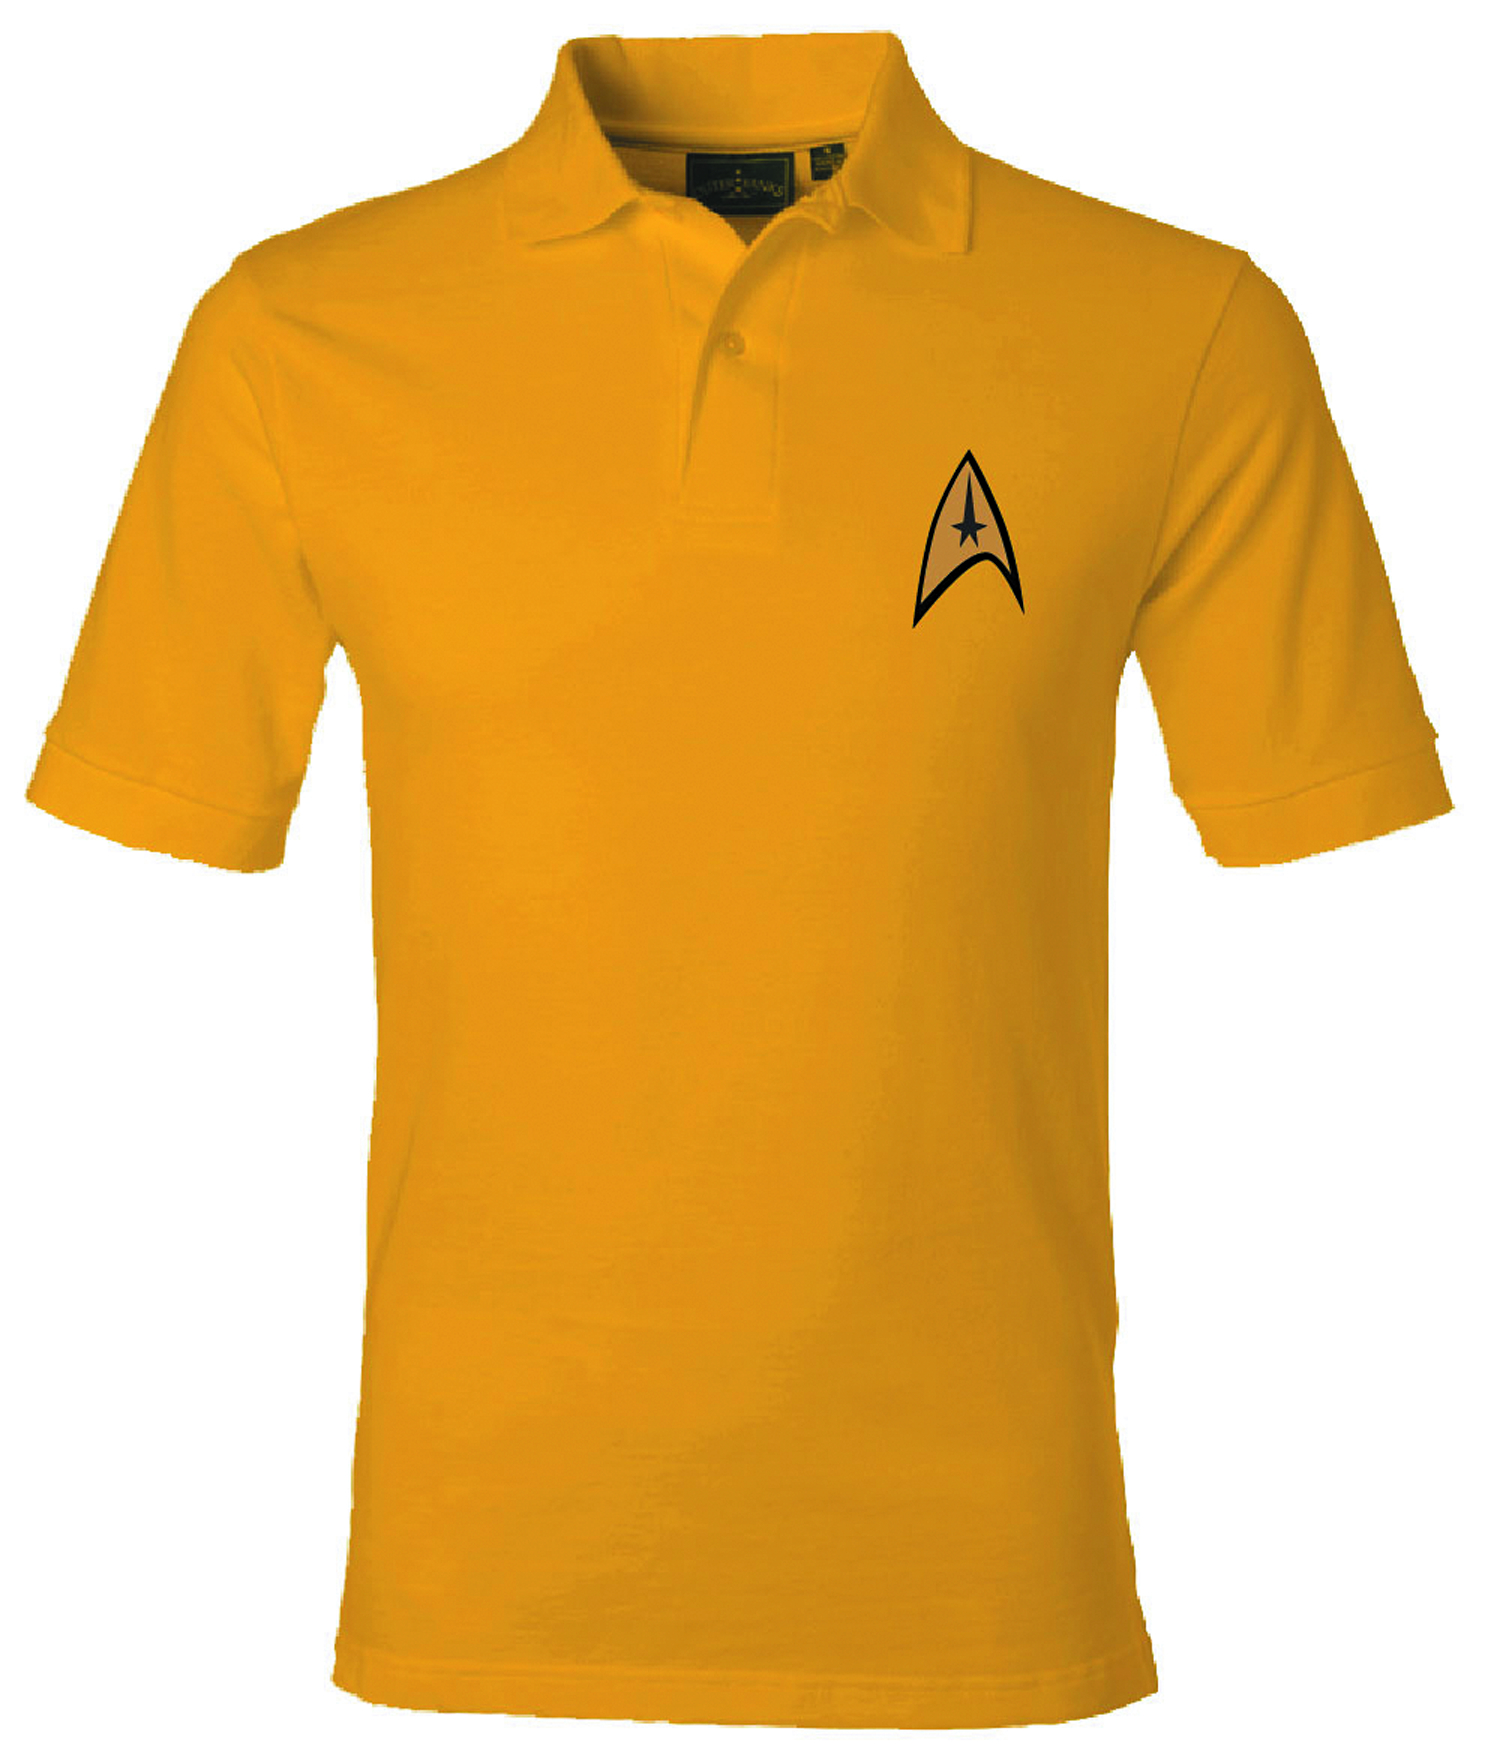 ST STARFLEET COMMAND SYMBOL GOLD POLO XL